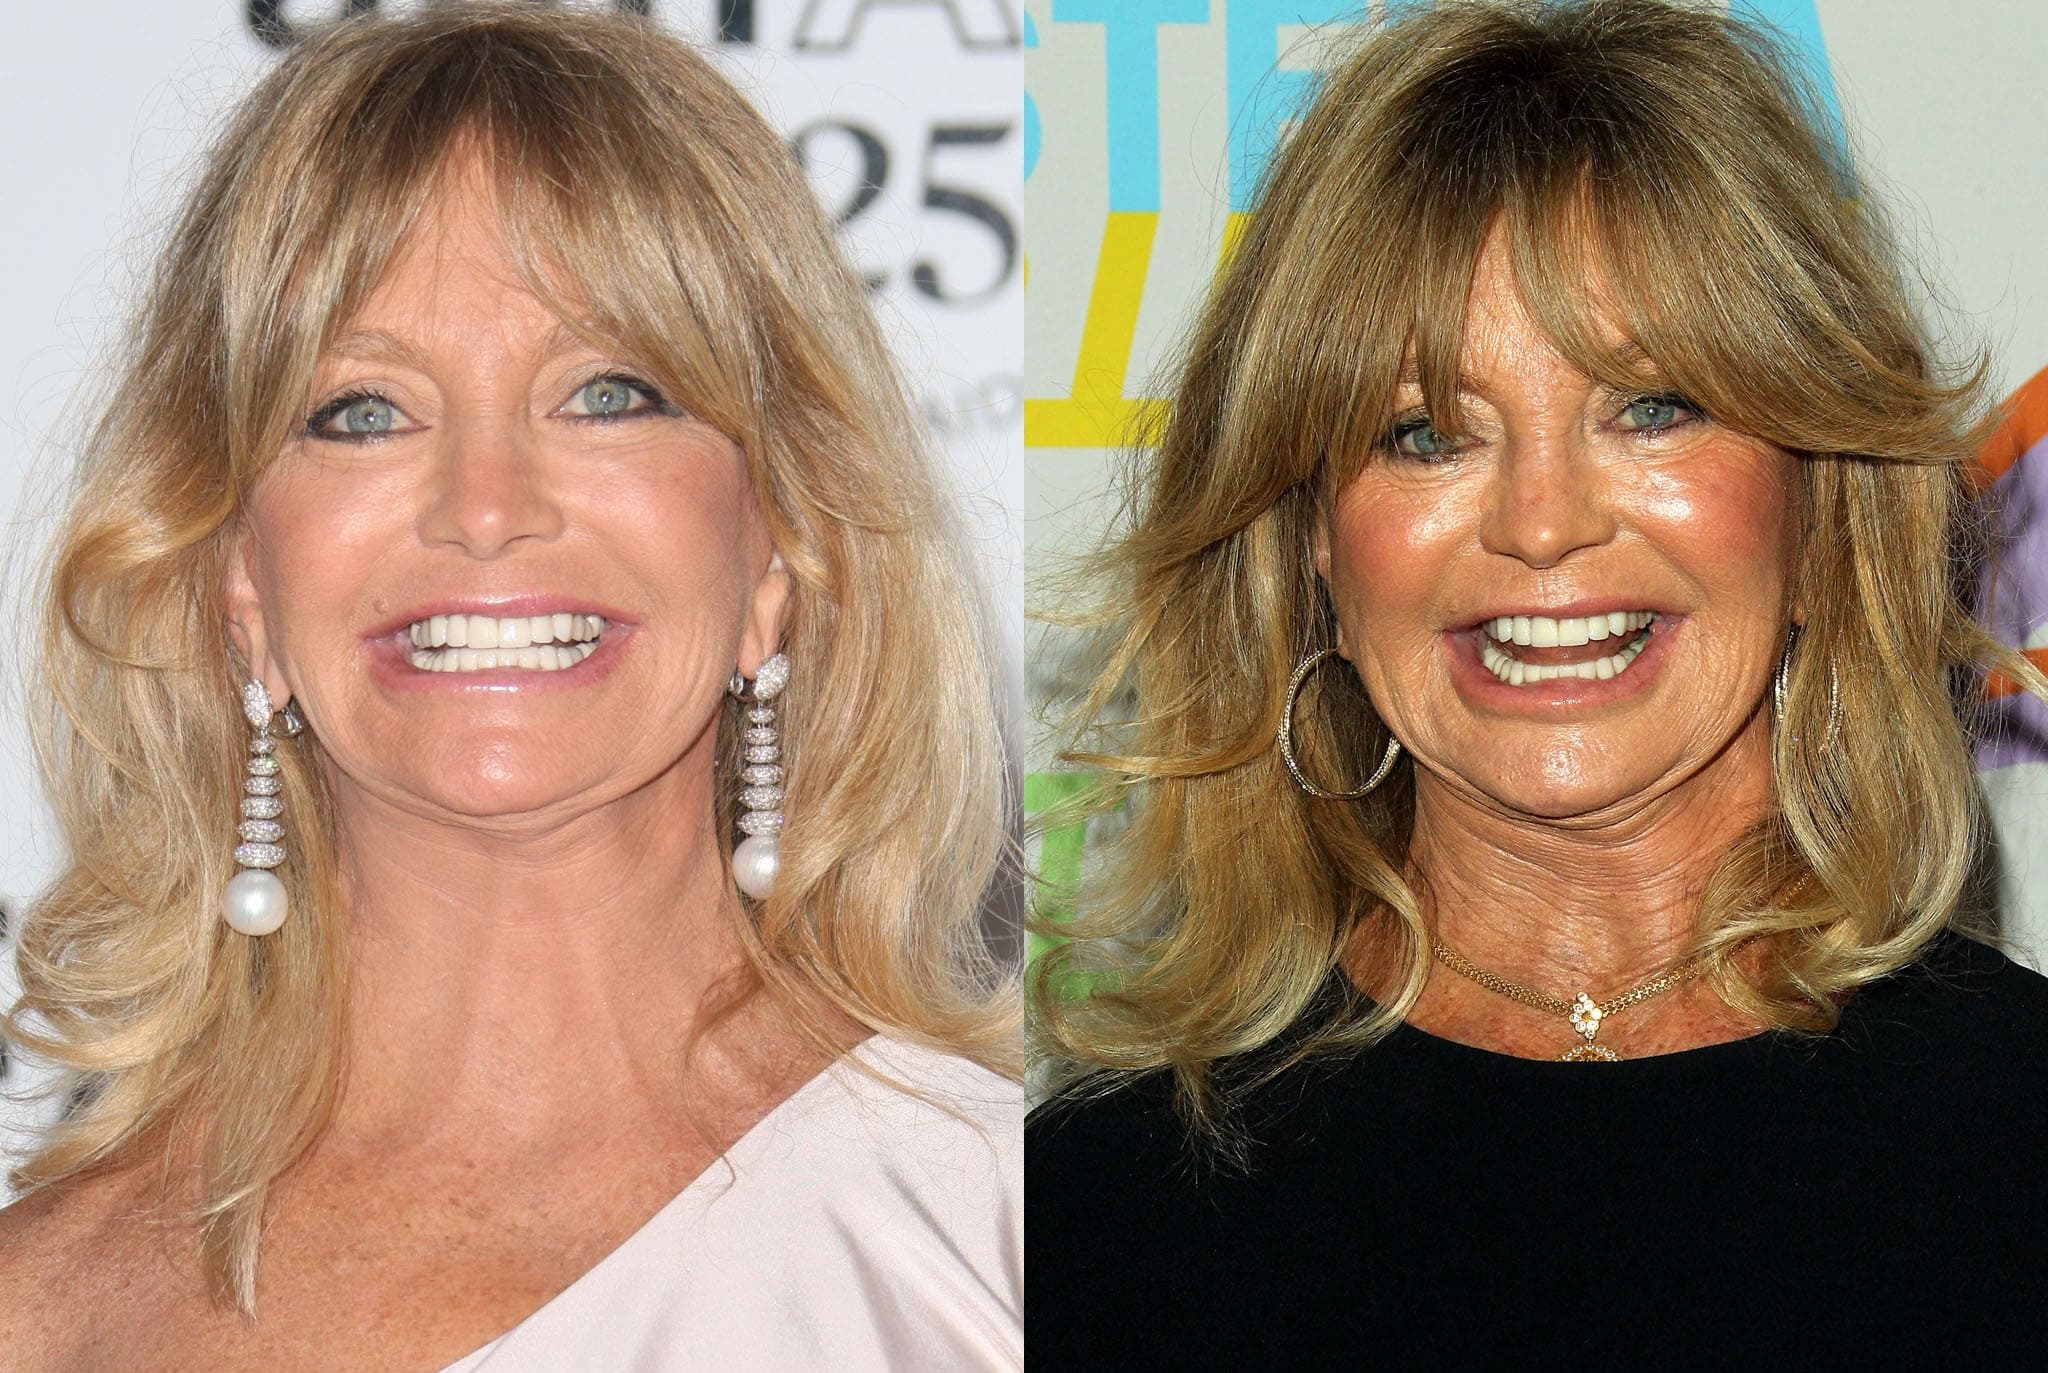 Goldie Hawn before (left) and after (right) plastic surgery rumors